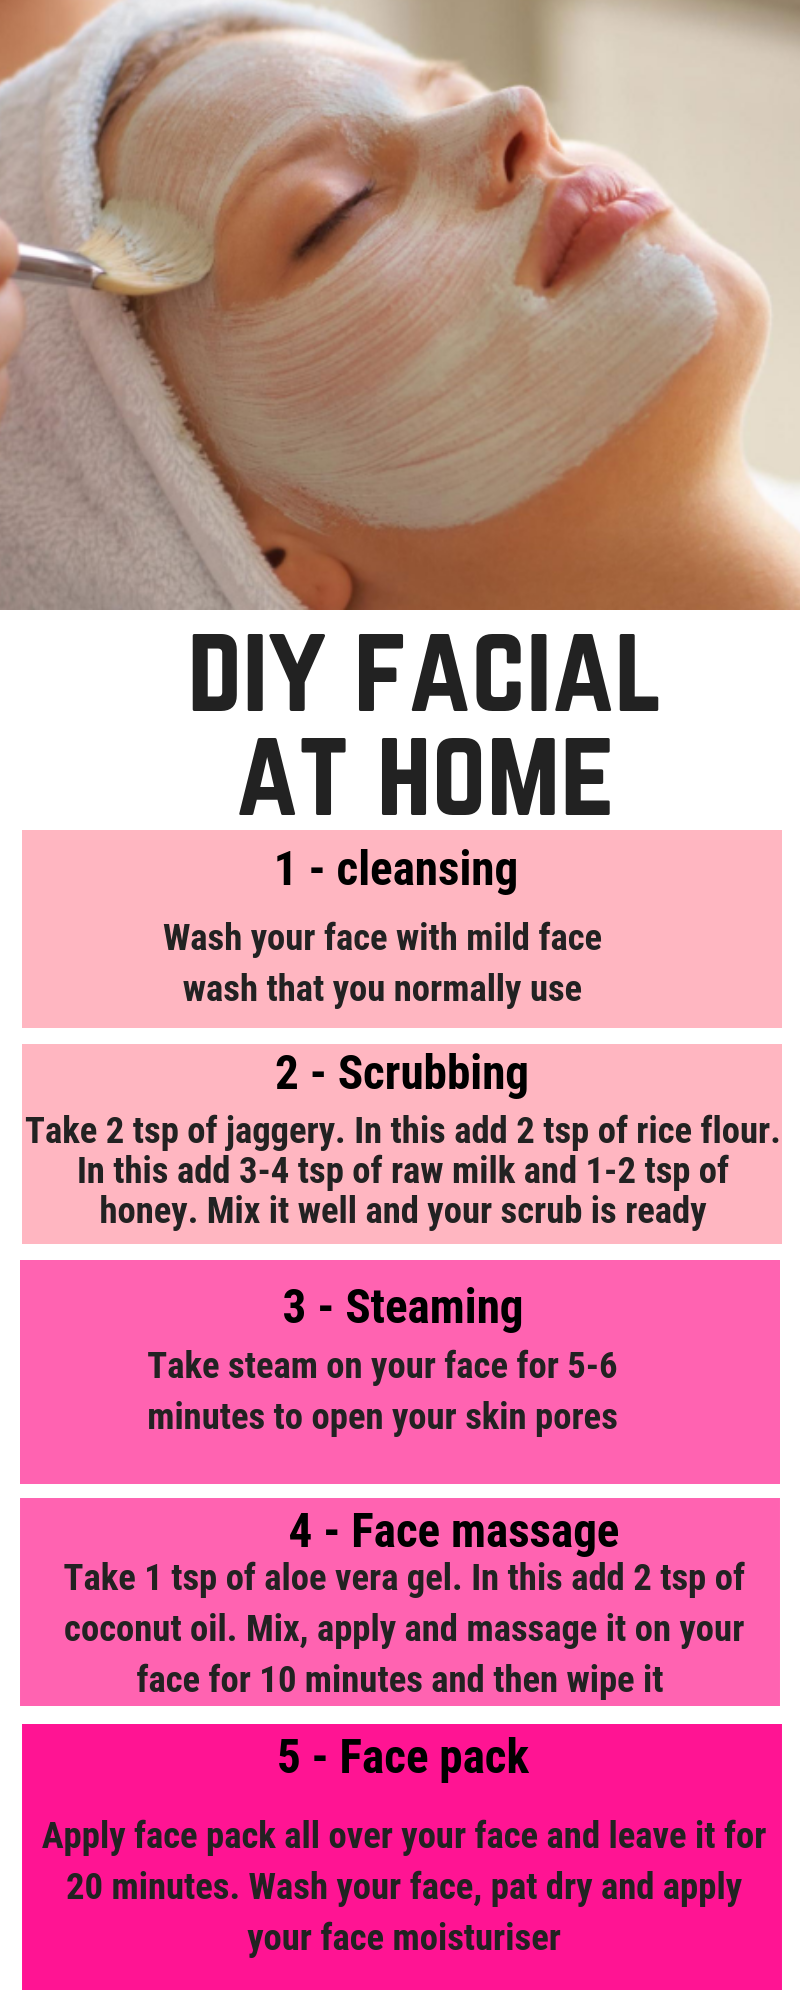 these steps to do DIY Facial. Get Fairer and Glowing Skin Instantly Follow These Steps To Do DIY Facial. Get Fairer And Glowing Skin InstantlyFollow These Steps To Do DIY Facial. Get Fairer And Glowing Skin Instantly